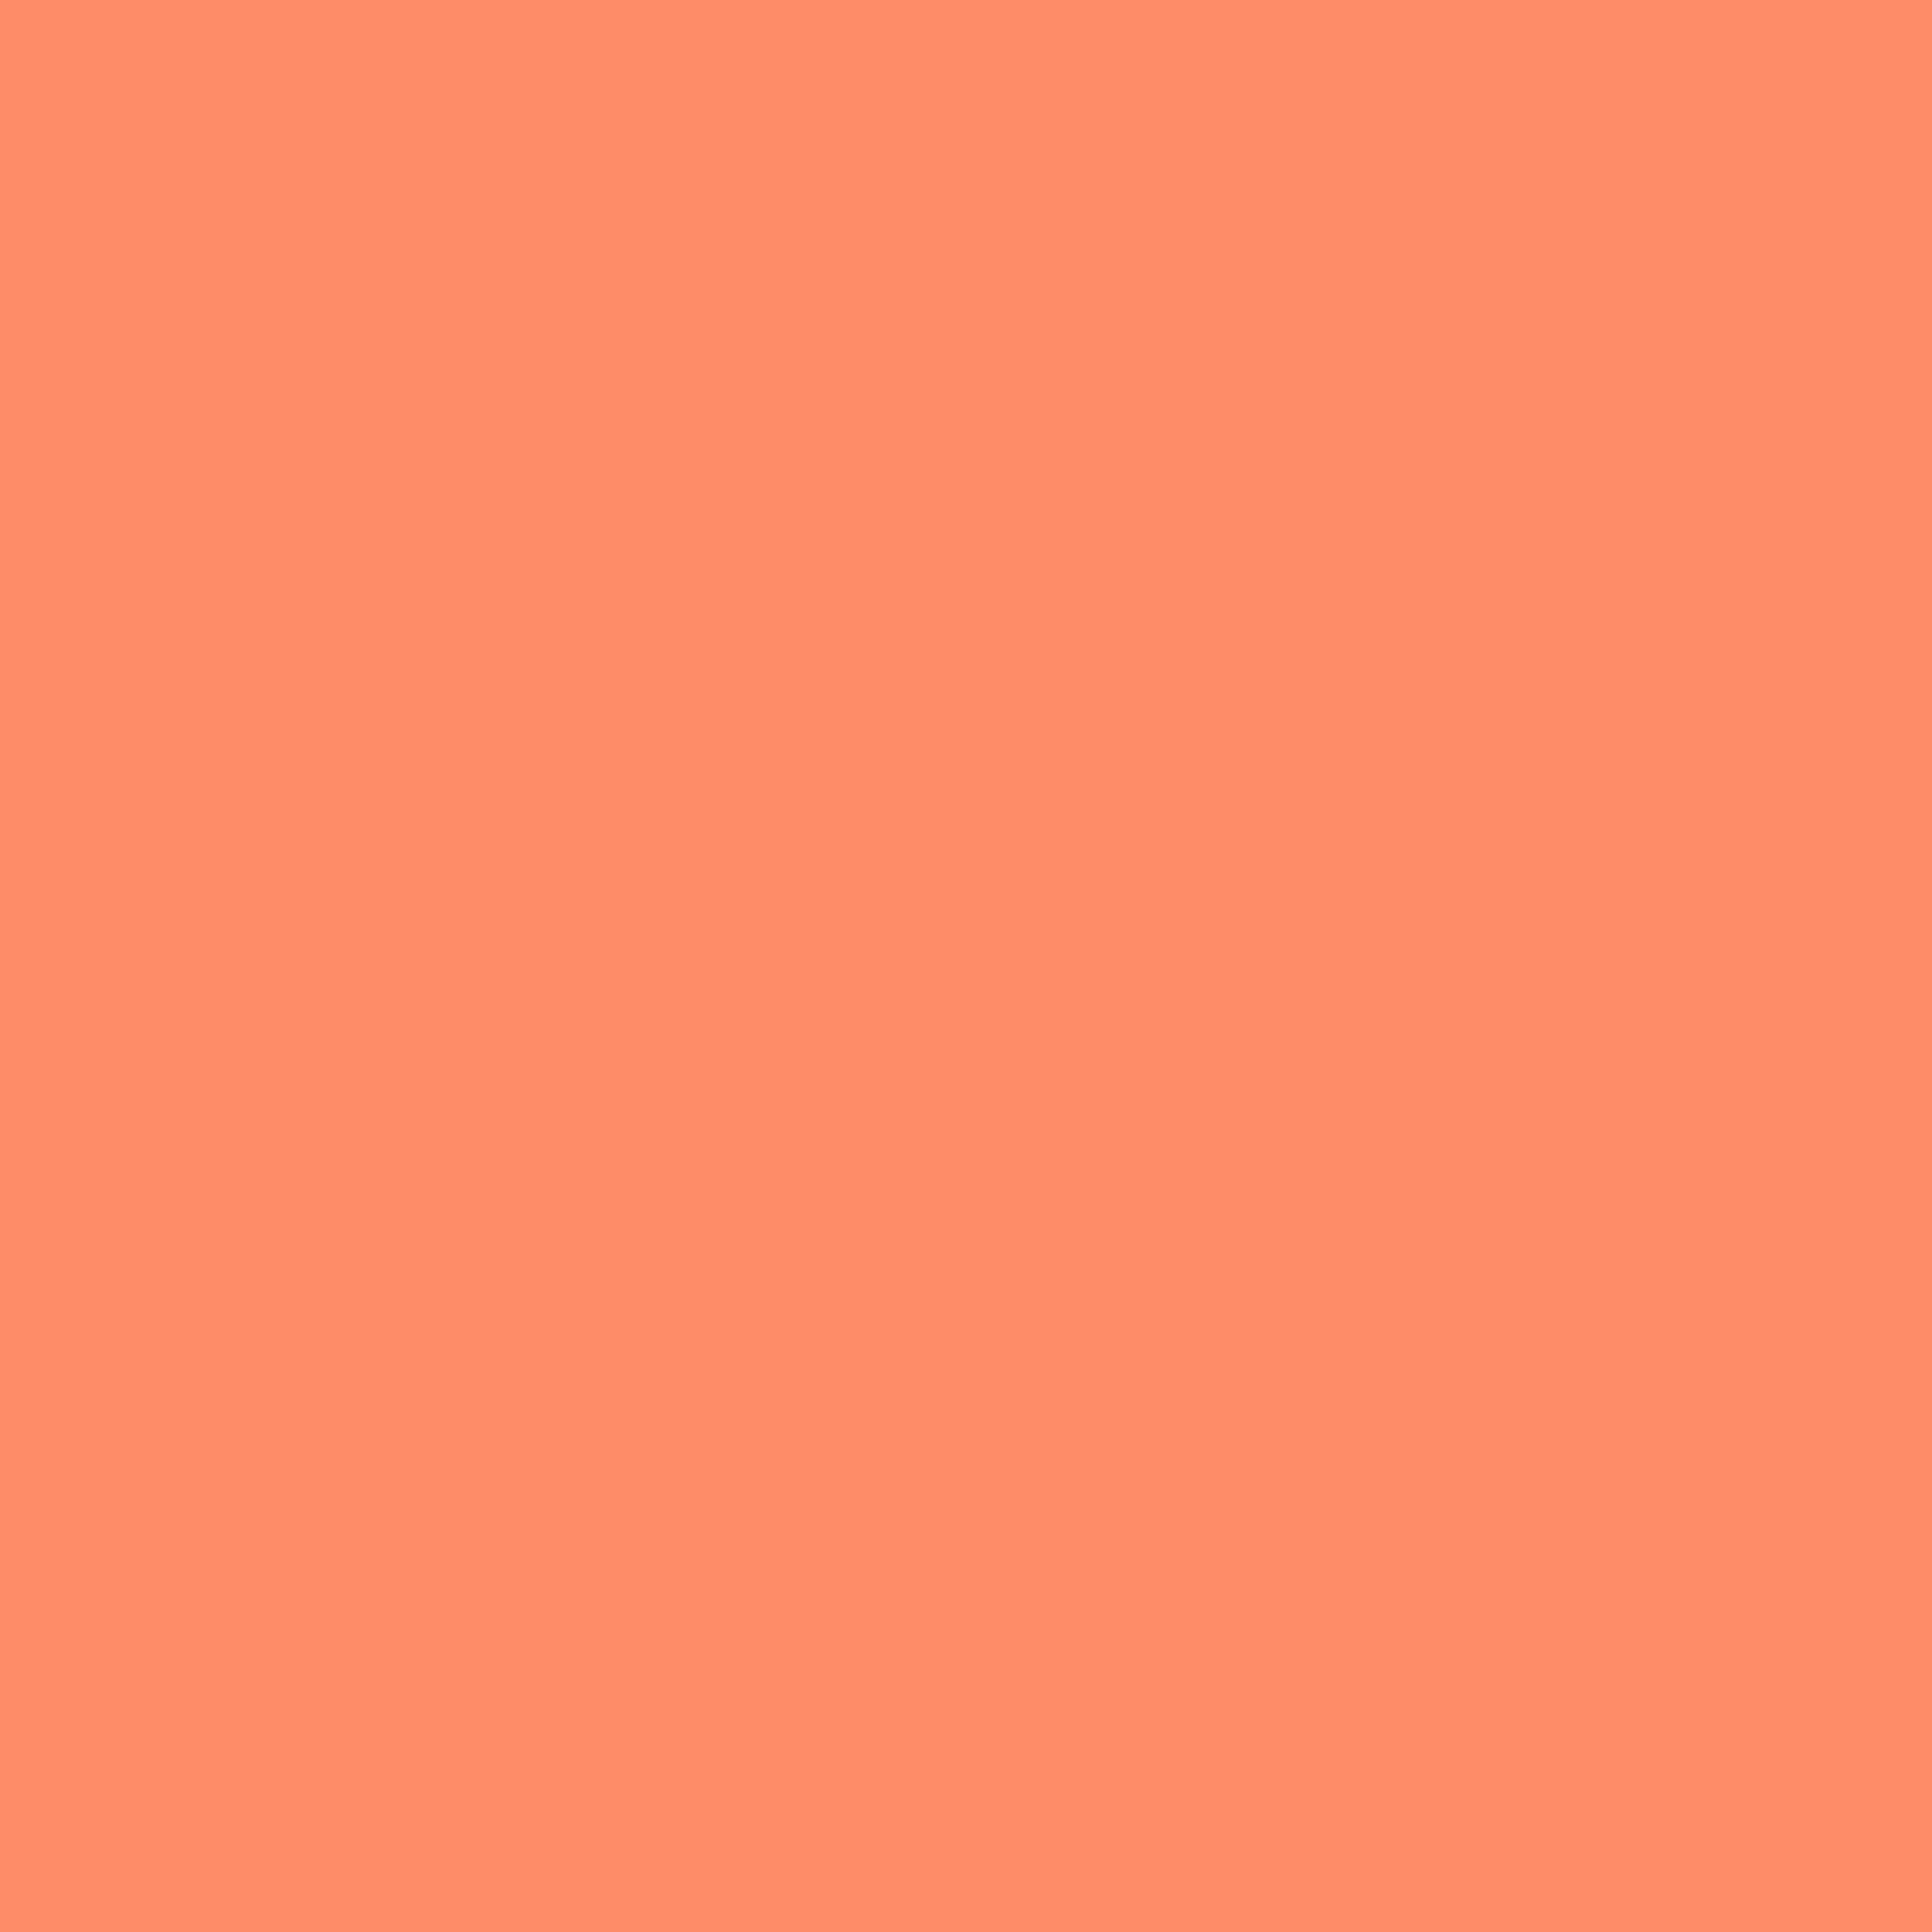 2048x2048 Salmon Solid Color Background